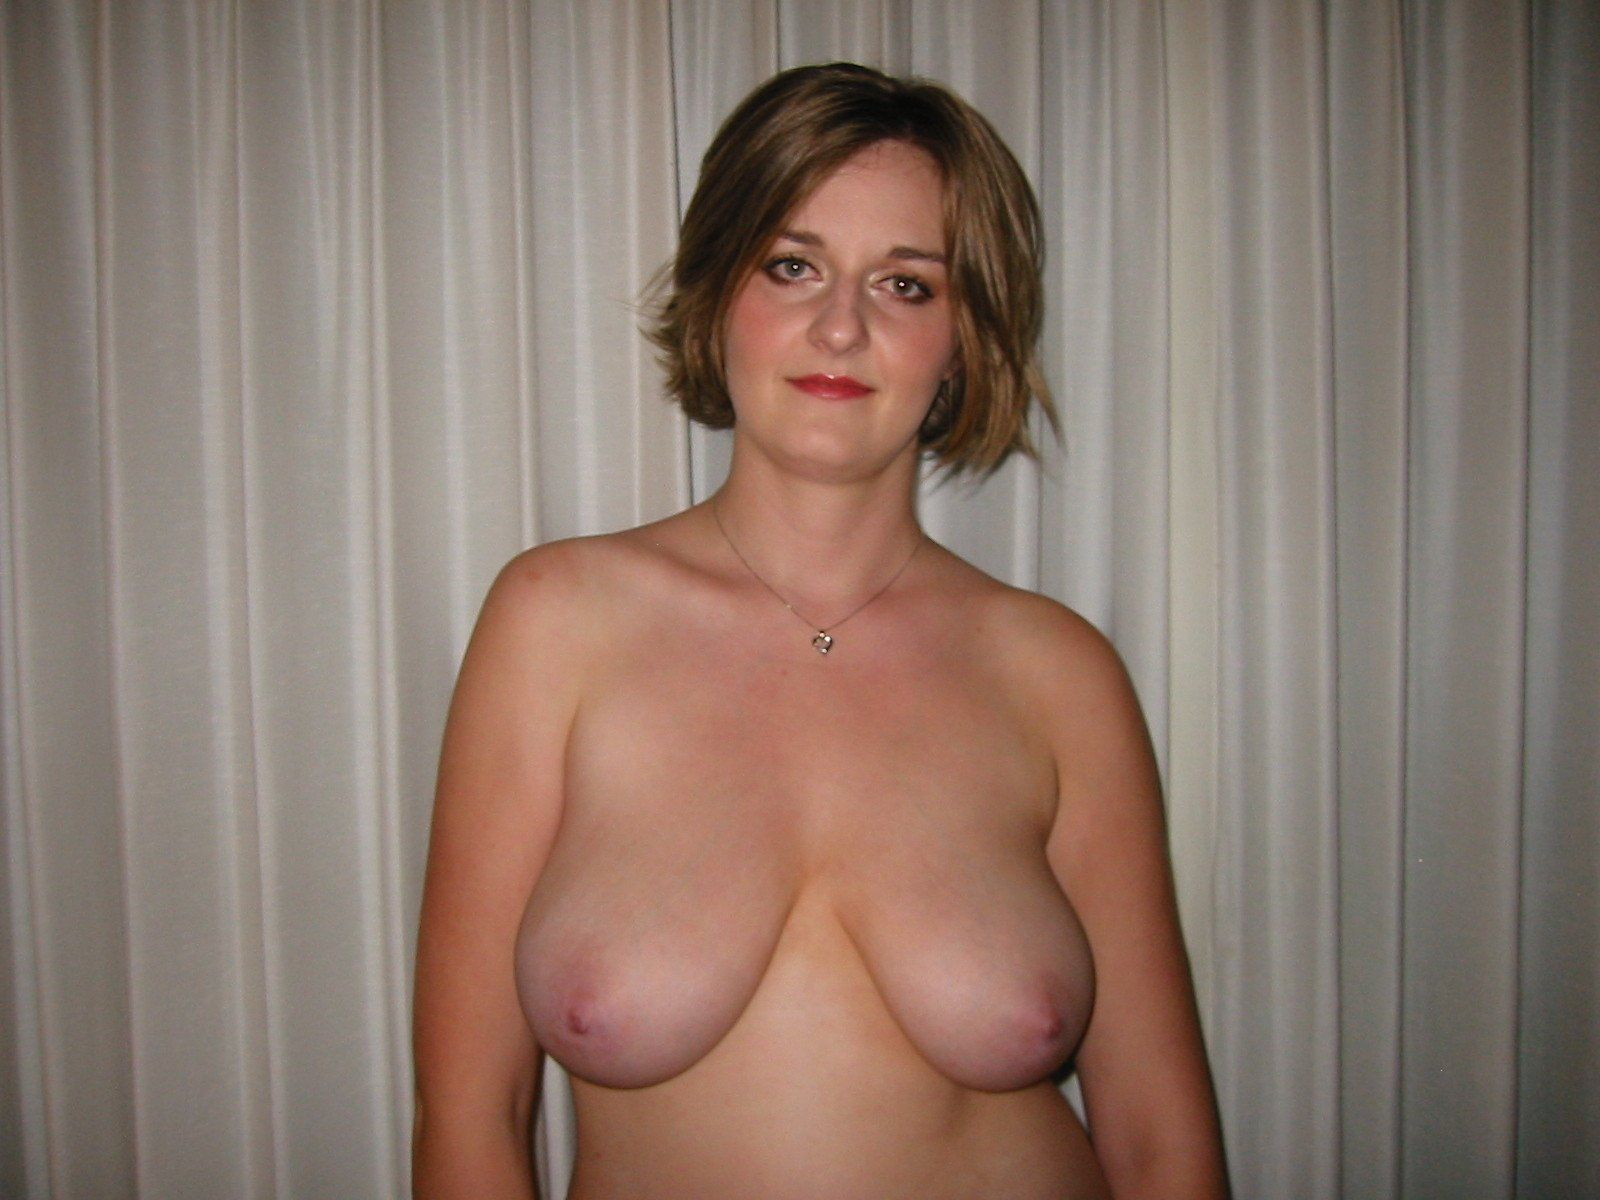 Great amature milf tits